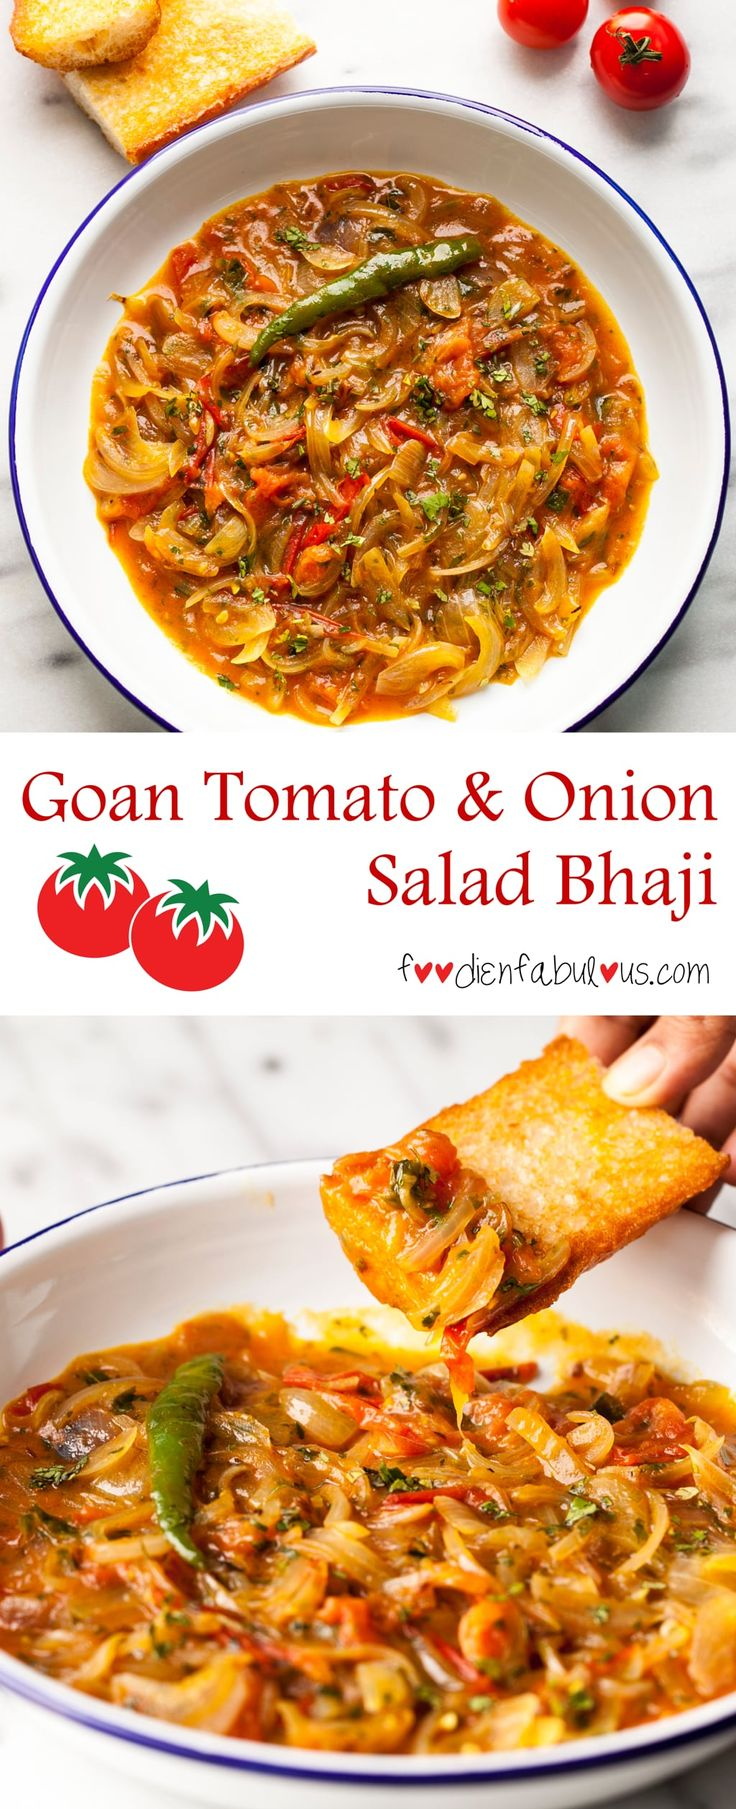 Authentic Goan recipe for a traditional breakfast of Tomato and Onion Salad bhaji found across all local homes and restaurants. Served with pao and a side of chao (chai/tea)